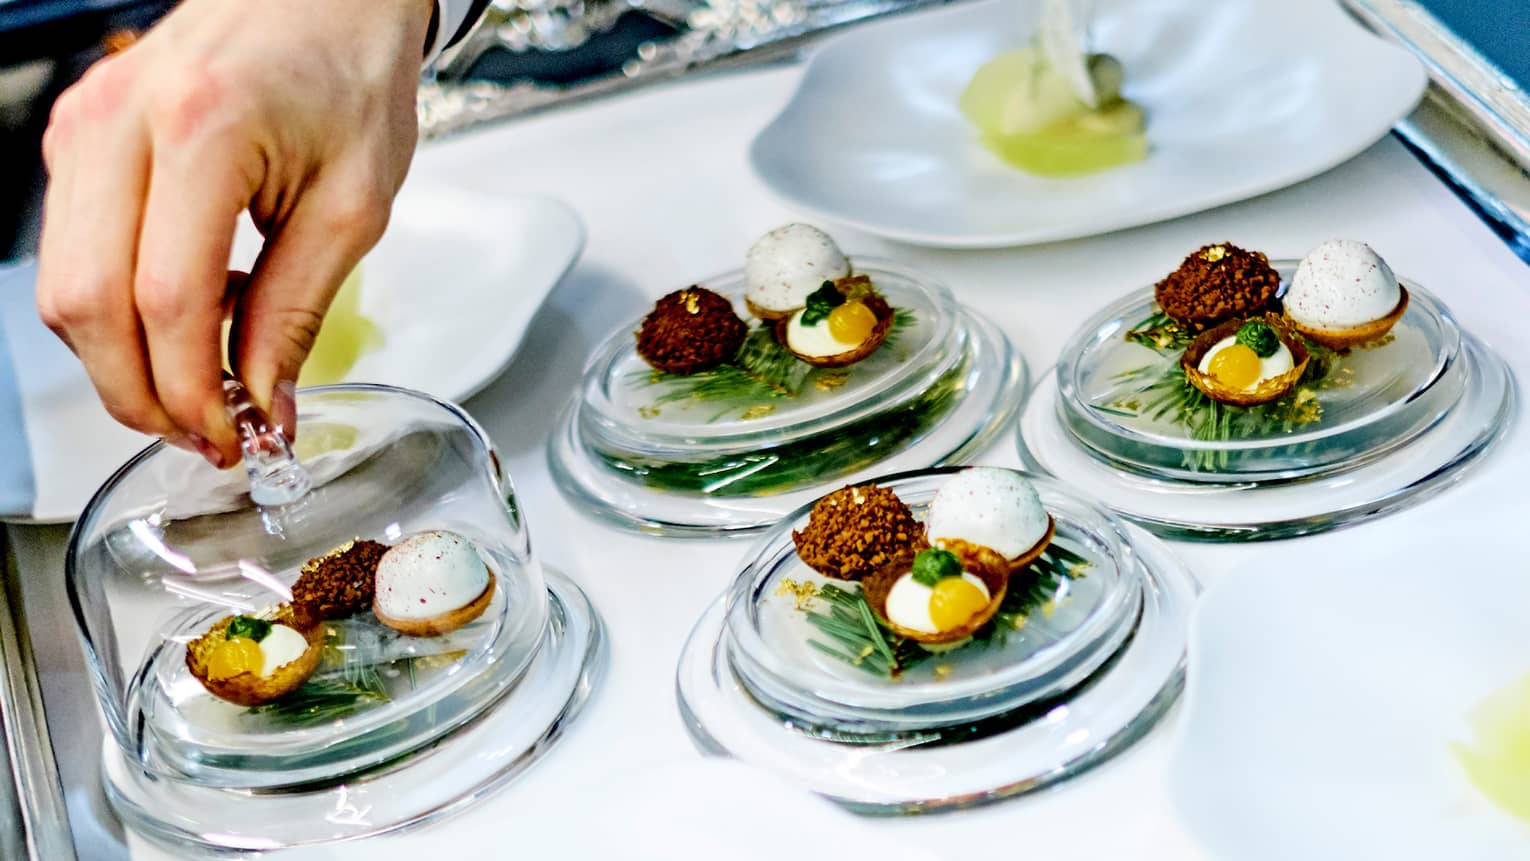 Close-up of chef garnishing small egg dishes